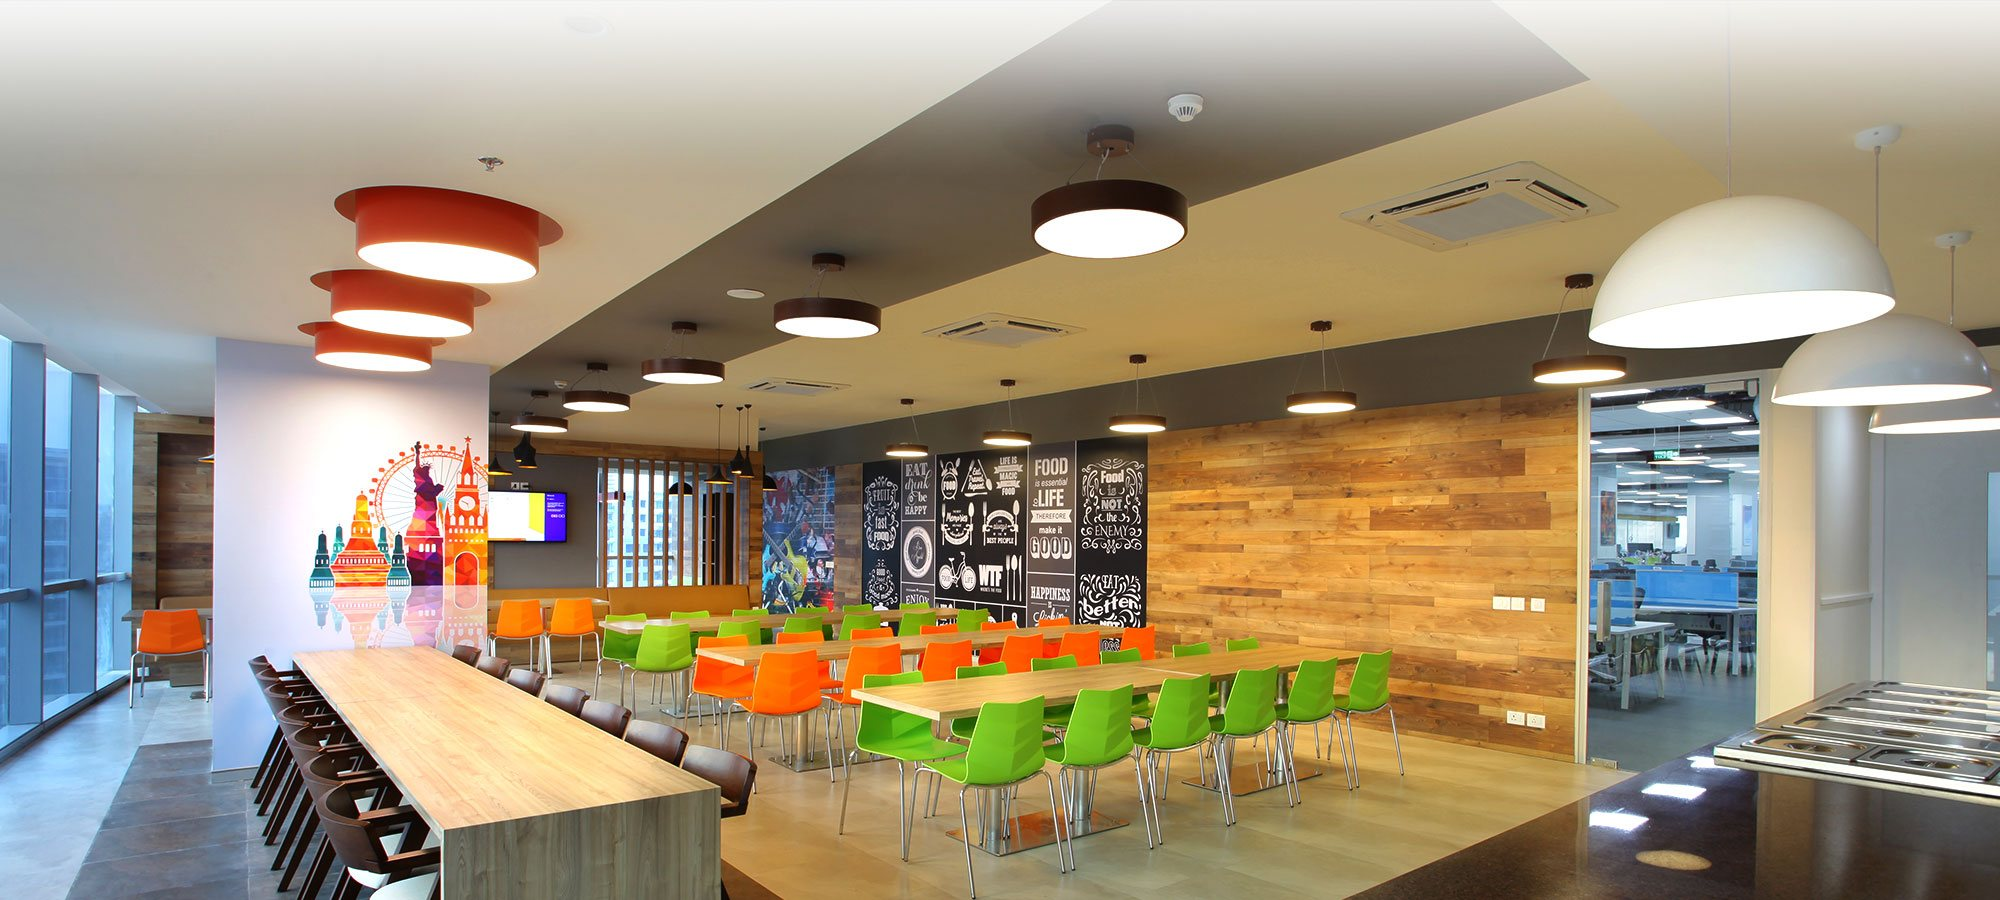 Office Interior Design Corporate Office Interior Designers In Delhi Ncr Office Interior Design